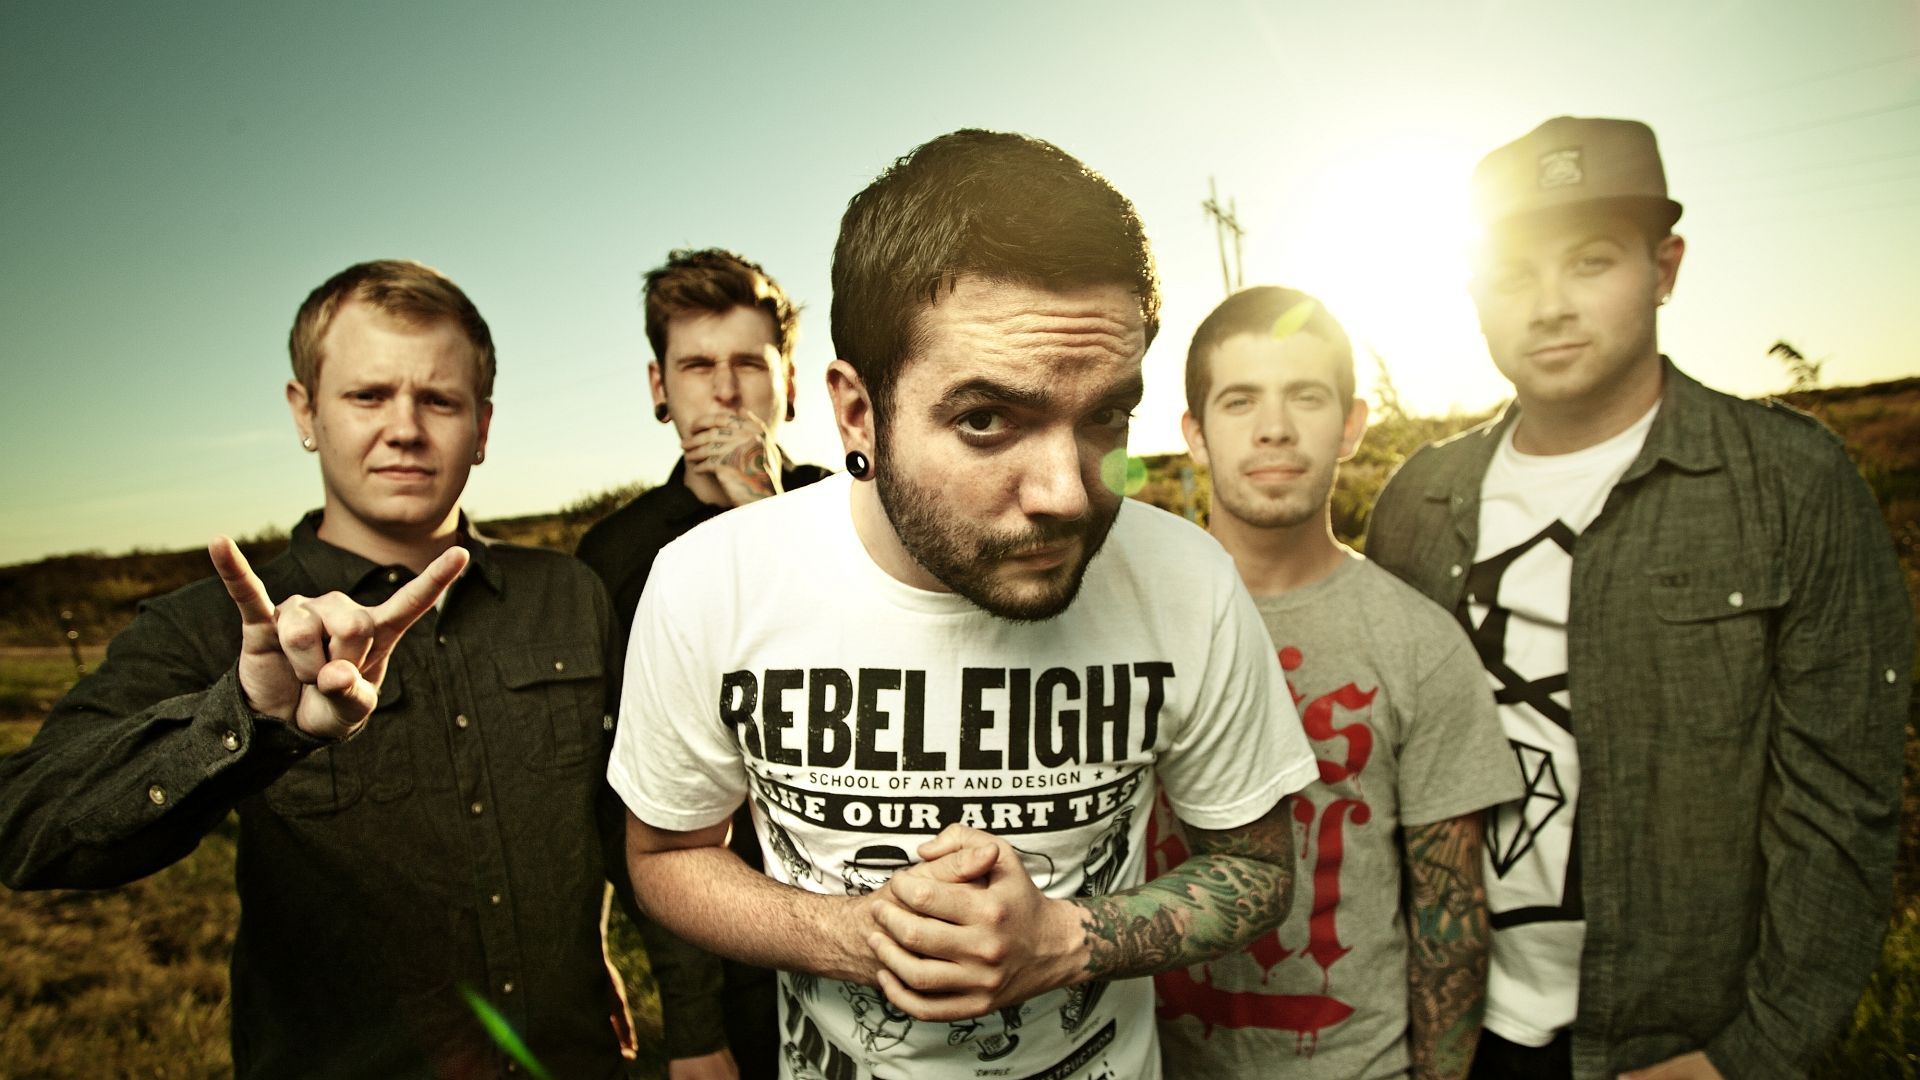 Group A Day To Remember